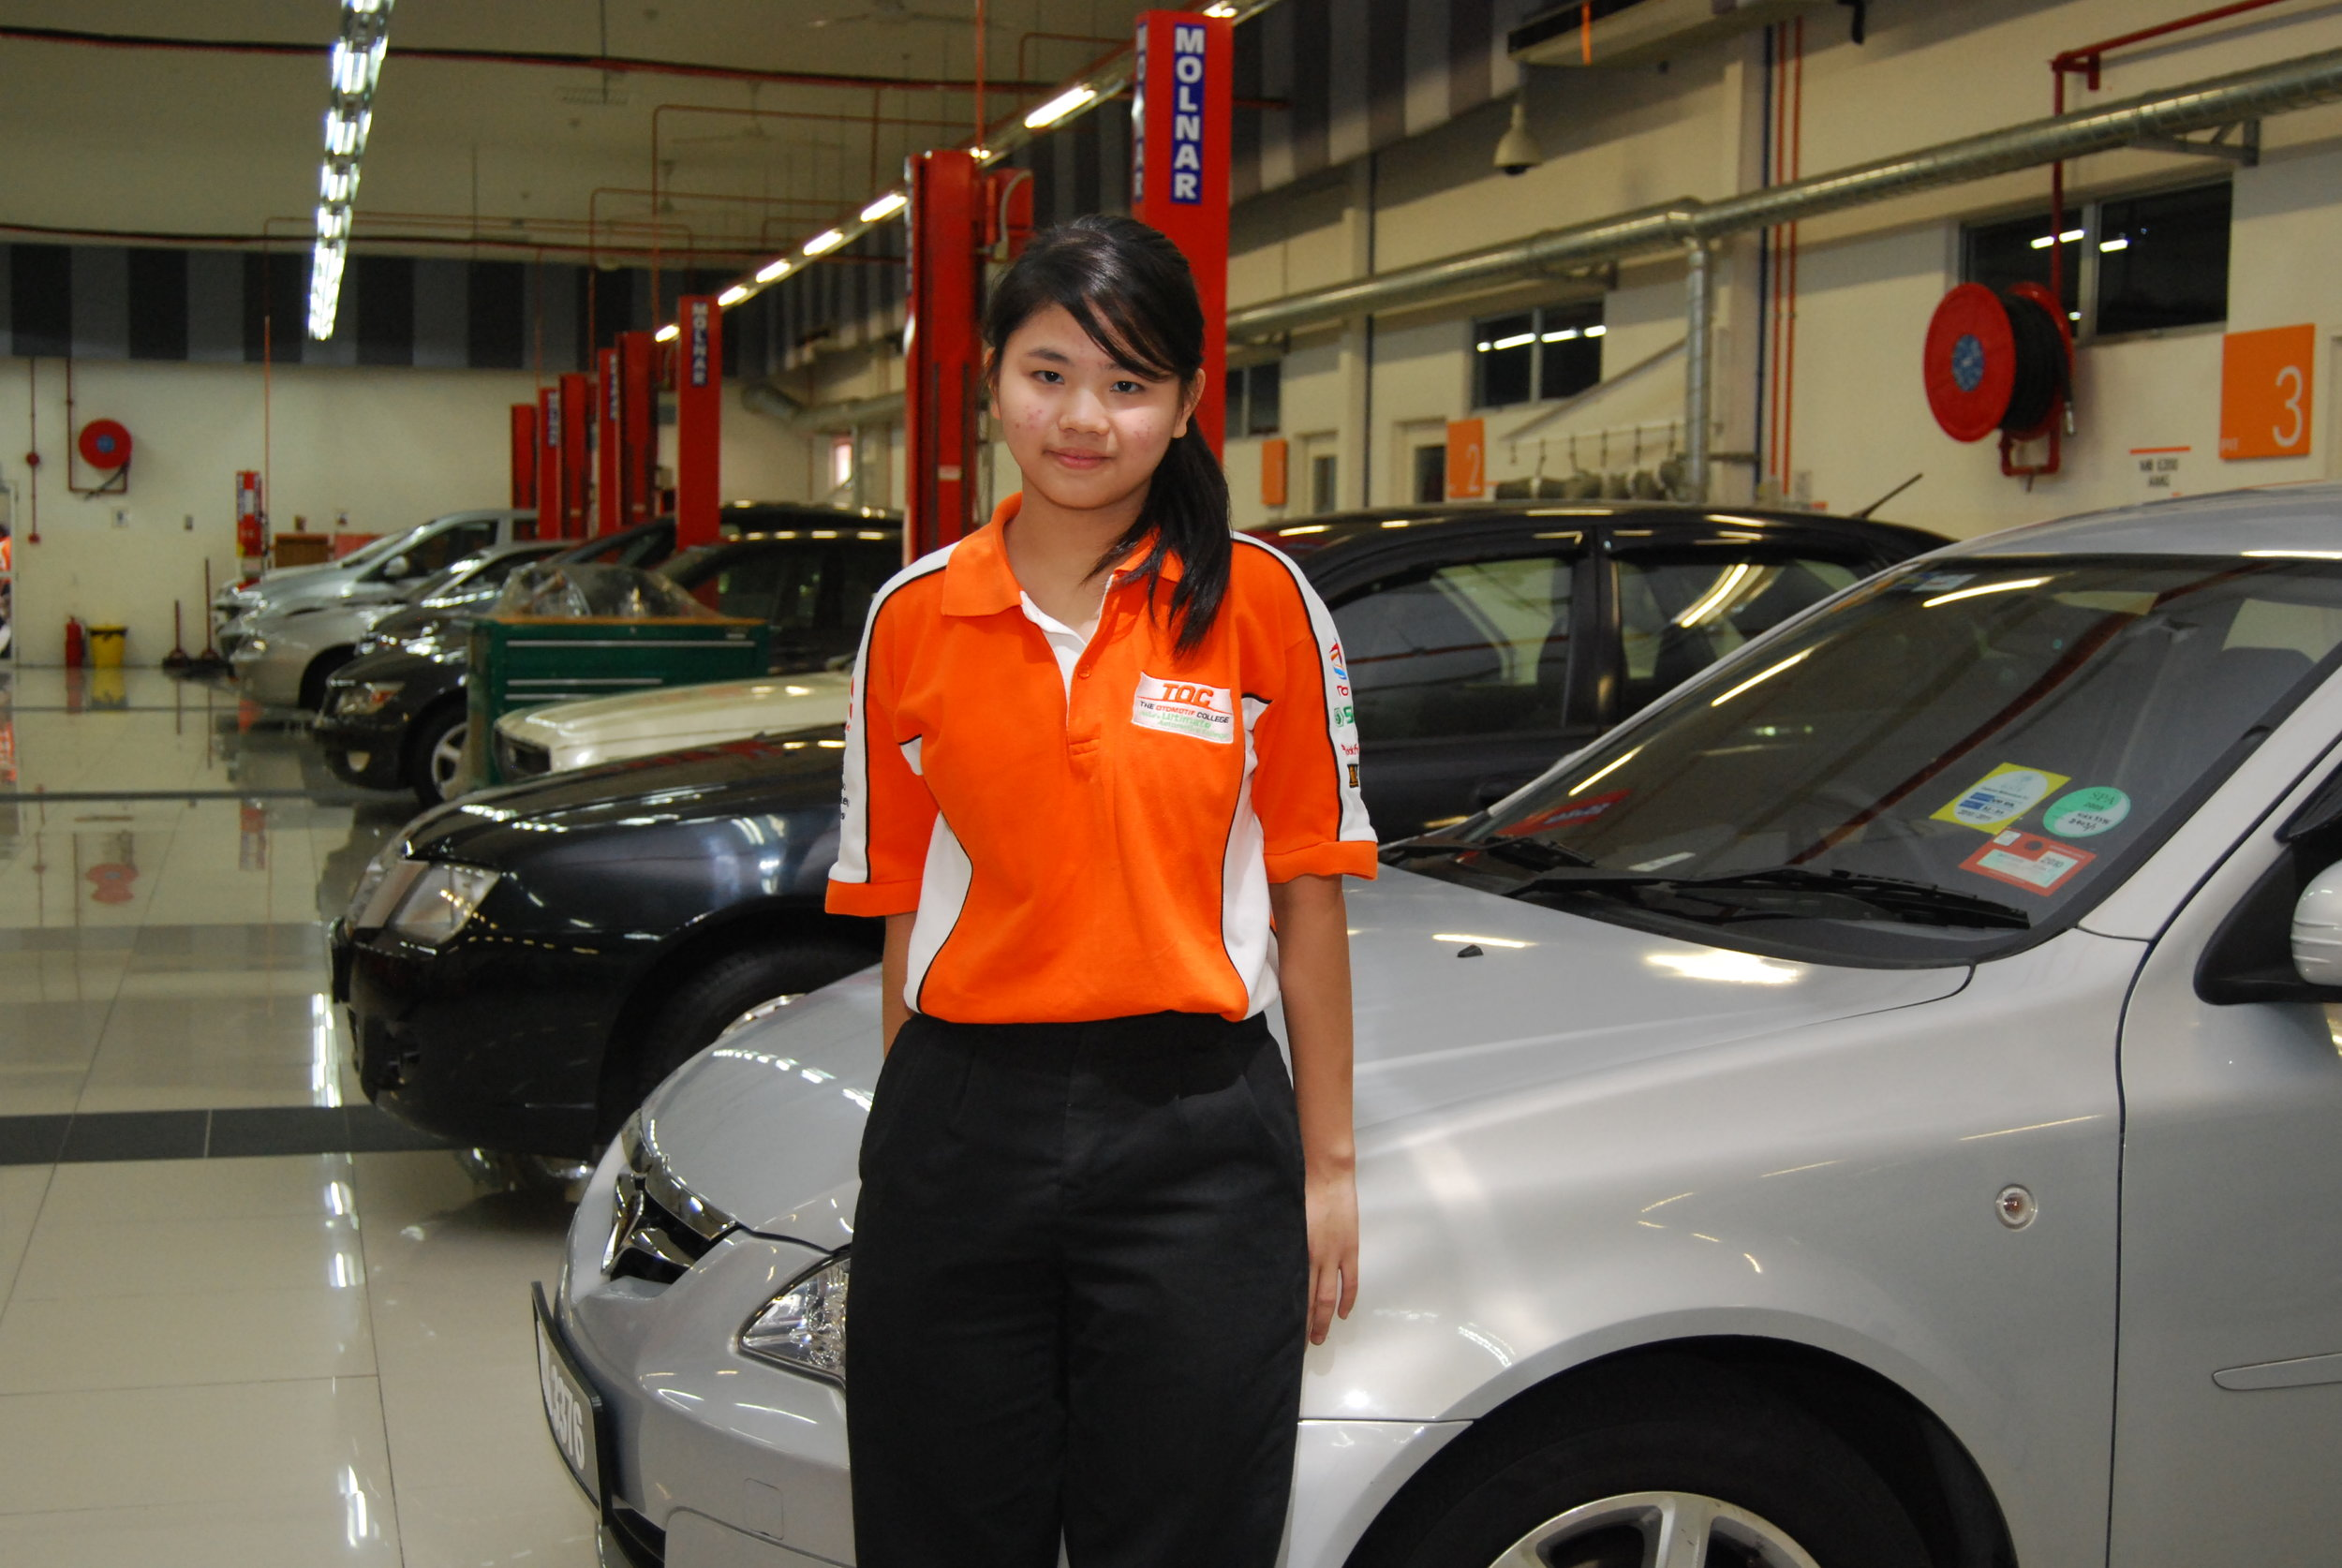 Photo: Carin Chiam believes that the automotive industry can be a good career choice for today's women who are competitive and up for challenges.